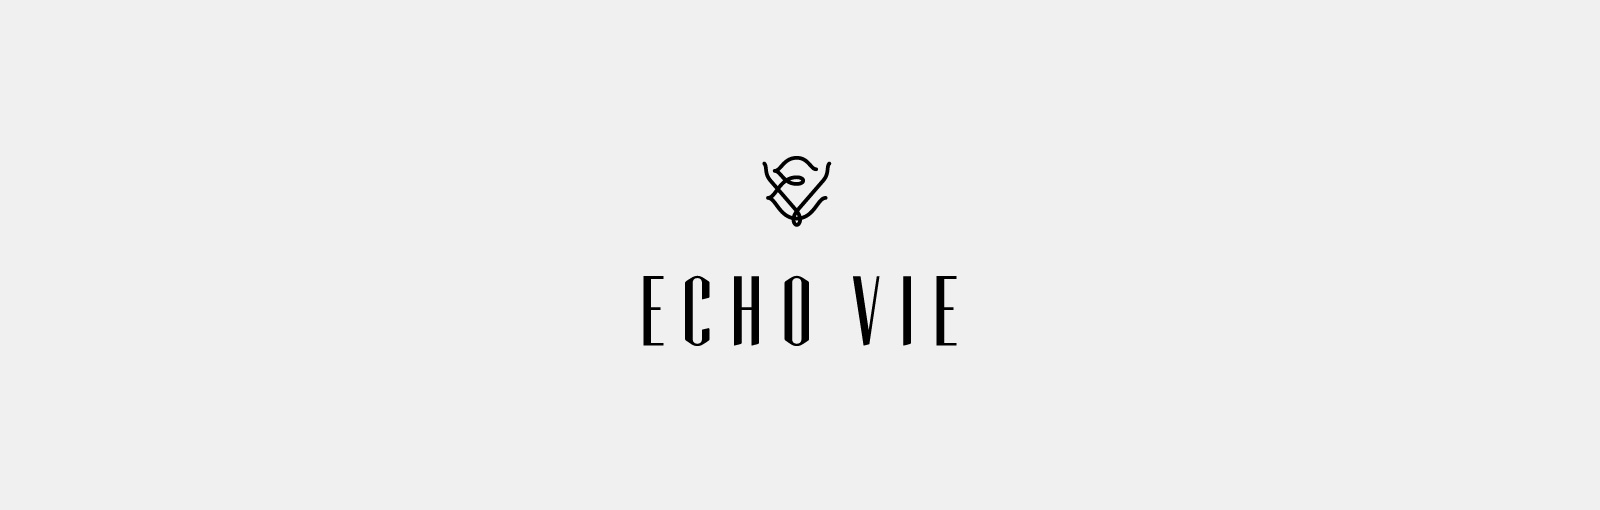 echo-vie-knoed-creative-goodfromyou-12.jpg